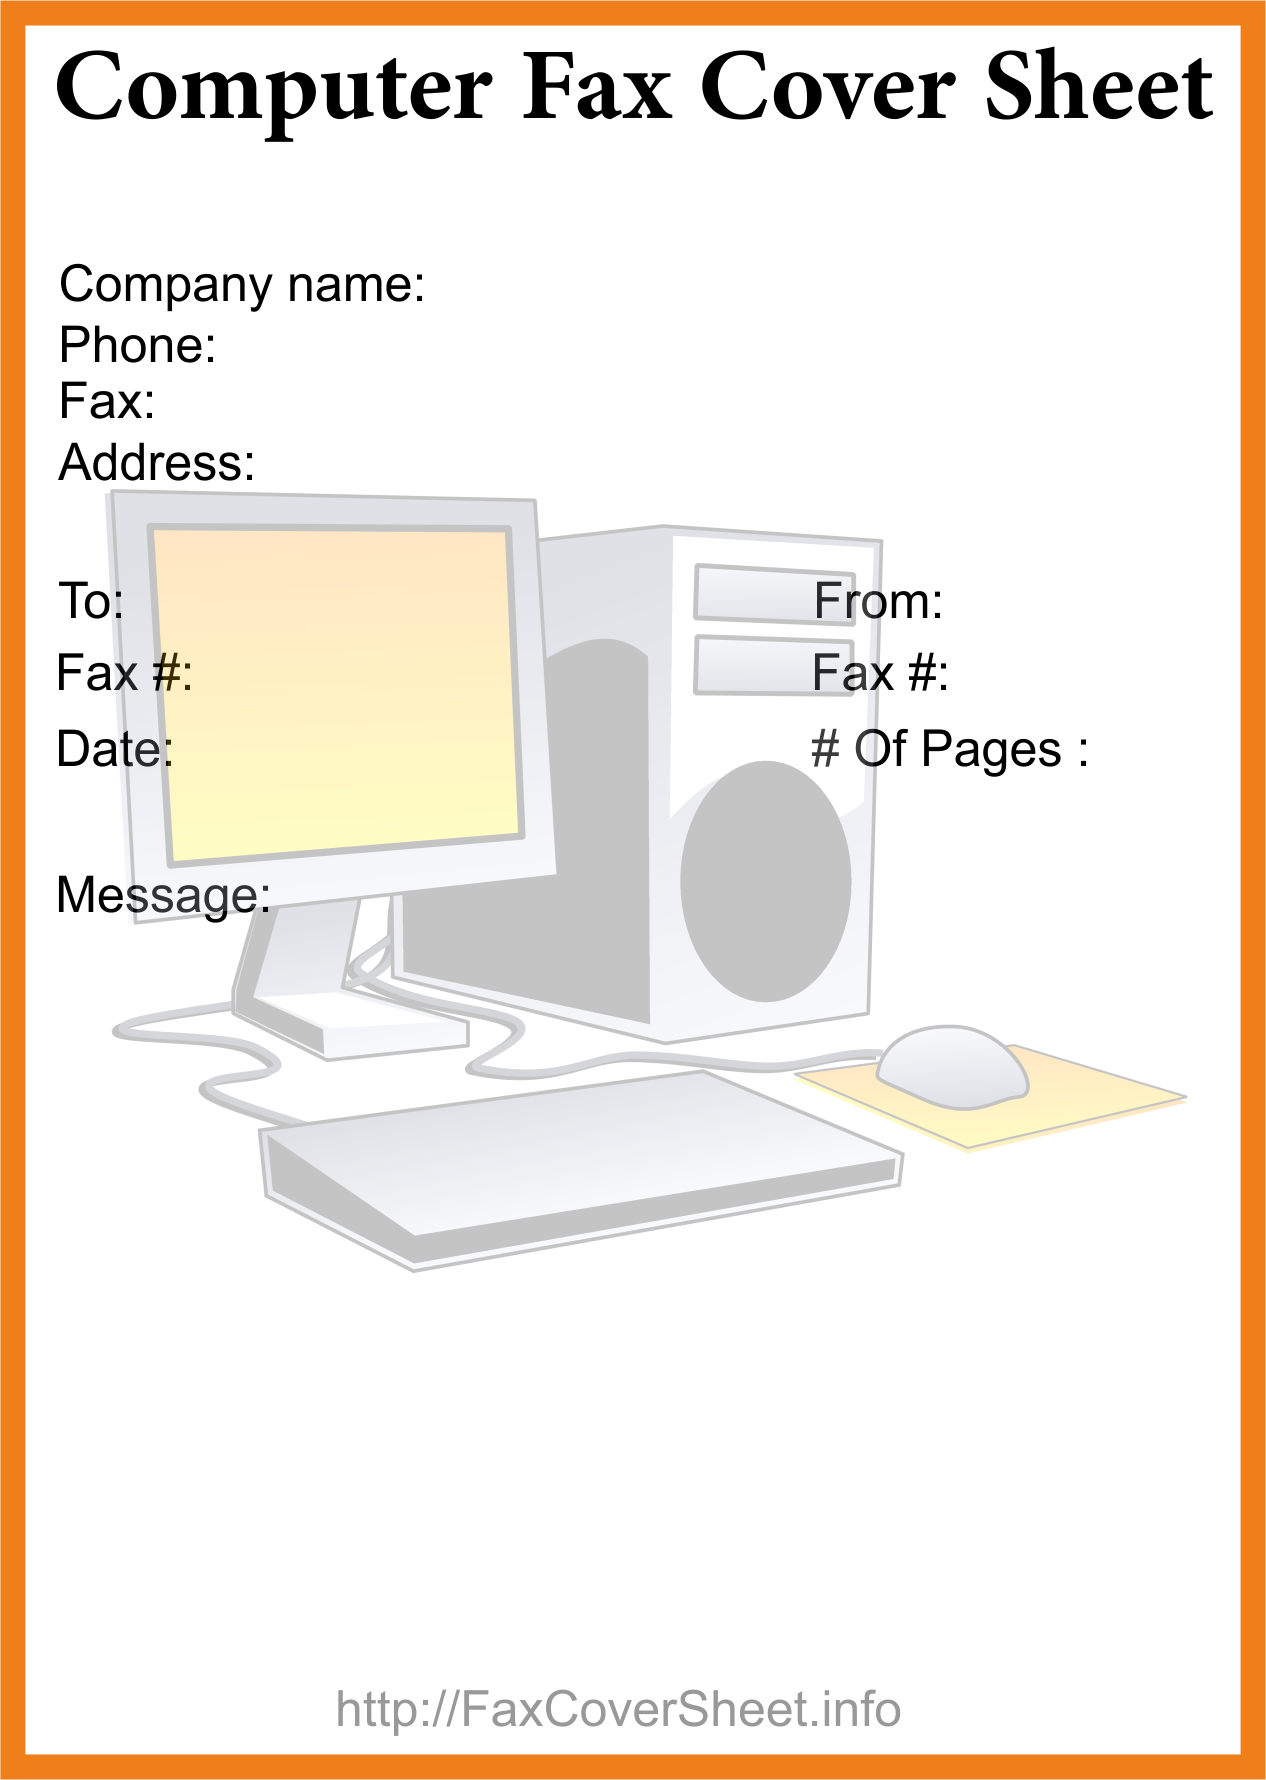 Download Computer Fax Cover Sheet Template